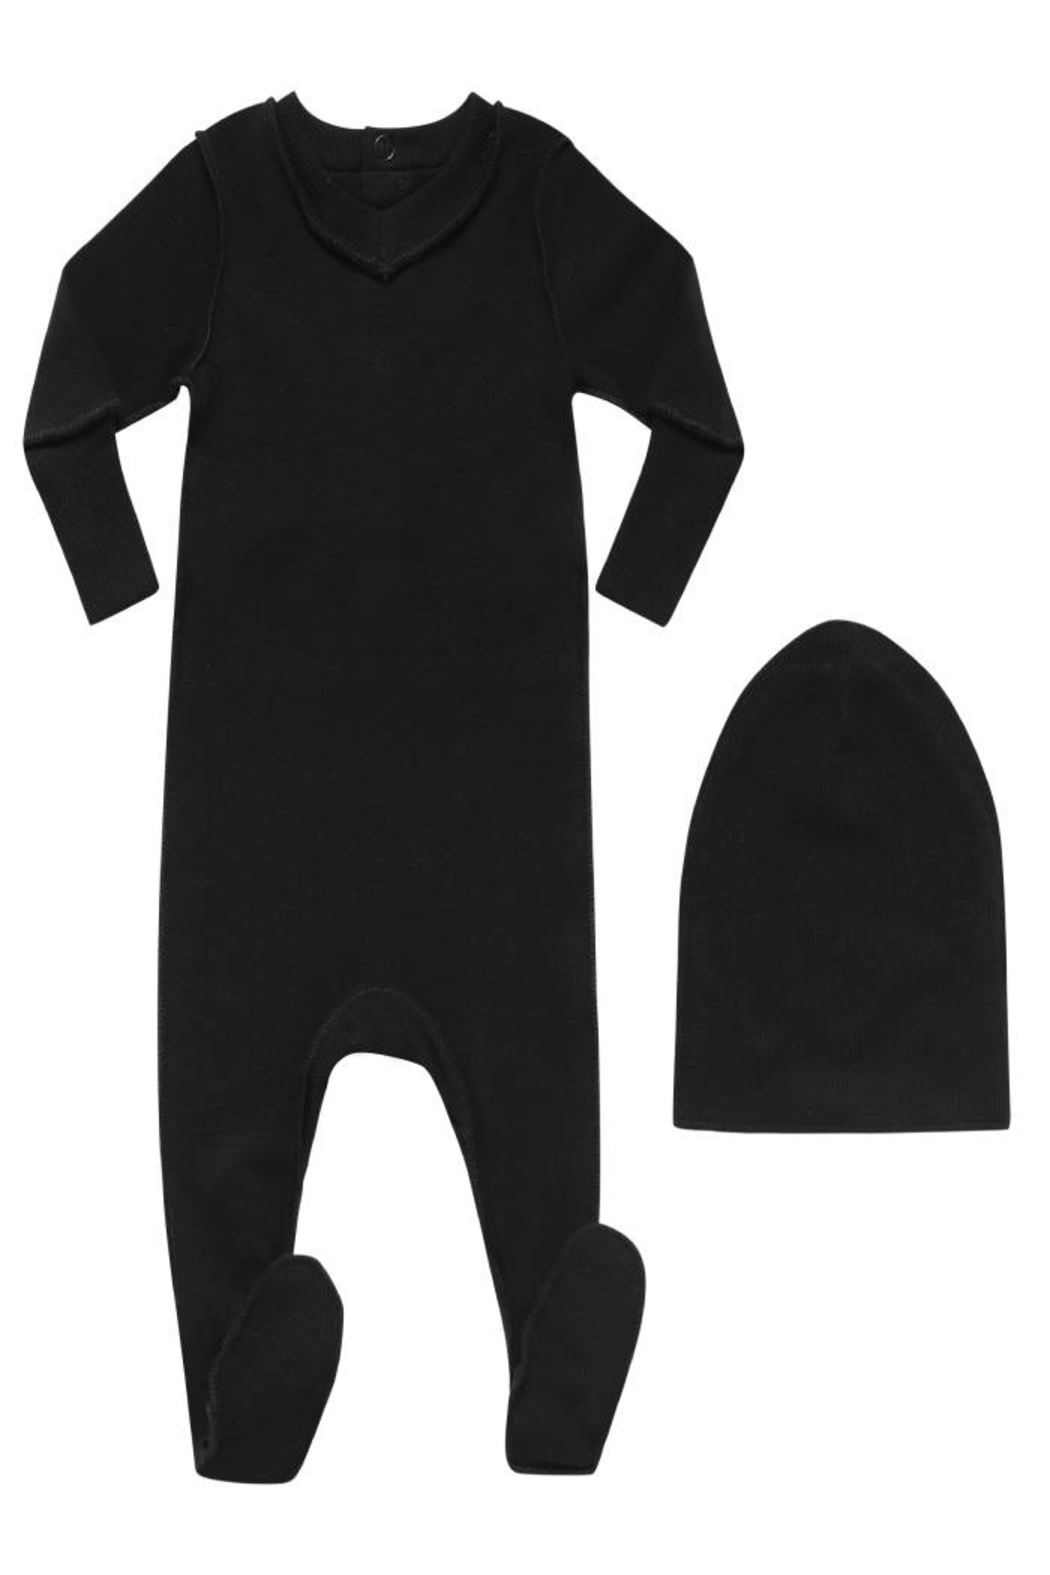 Little Parni  V-Neck Onesie Footie with Beanie | Premium wear Cotton Sleepwear - Main Image